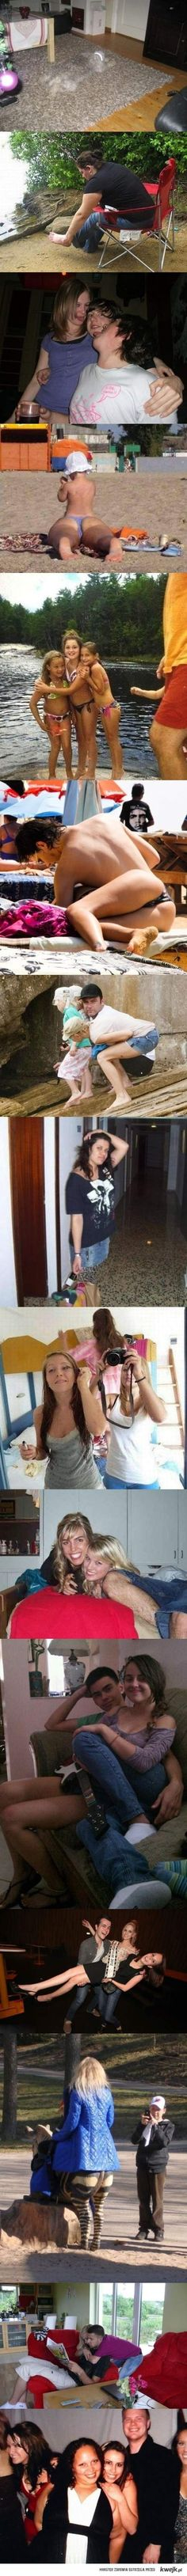 I laughed so hard! photos gone wrong!